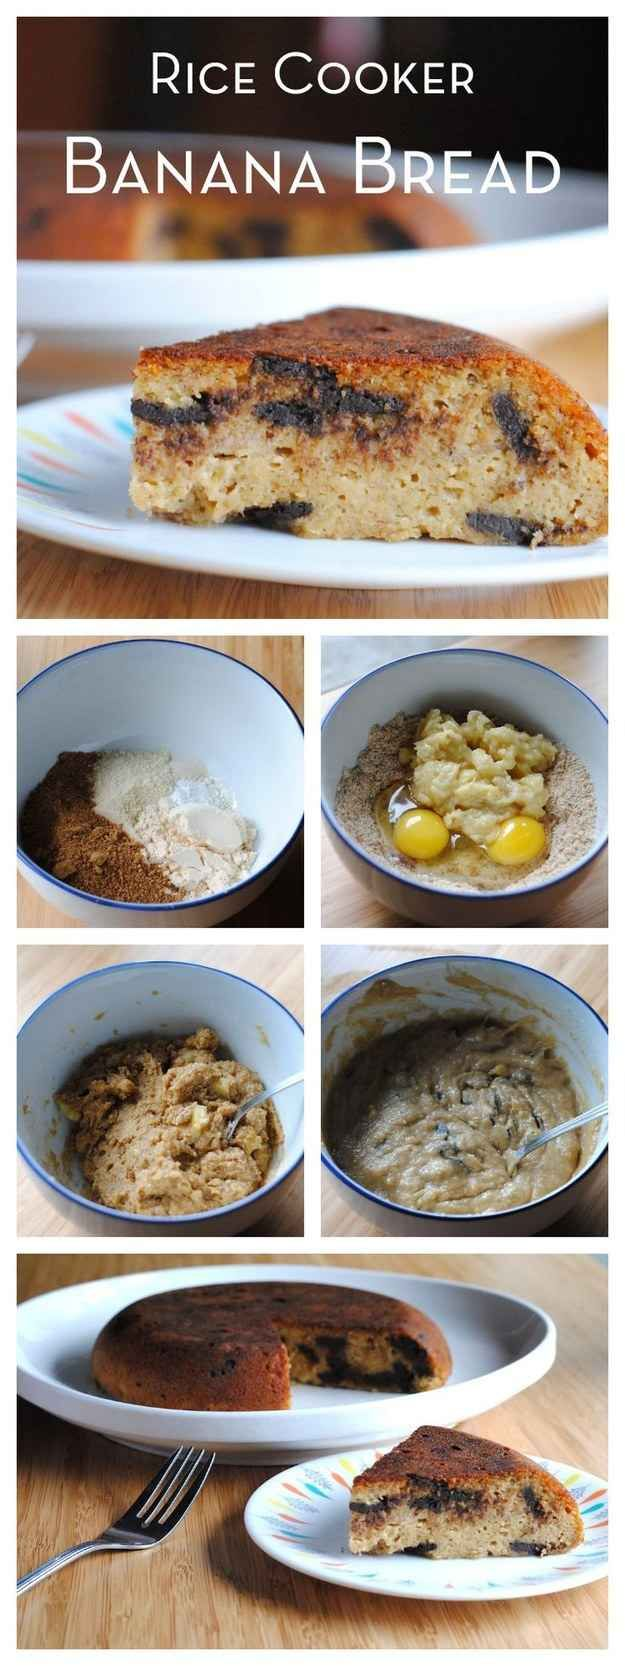 how to cook banana cake in rice cooker